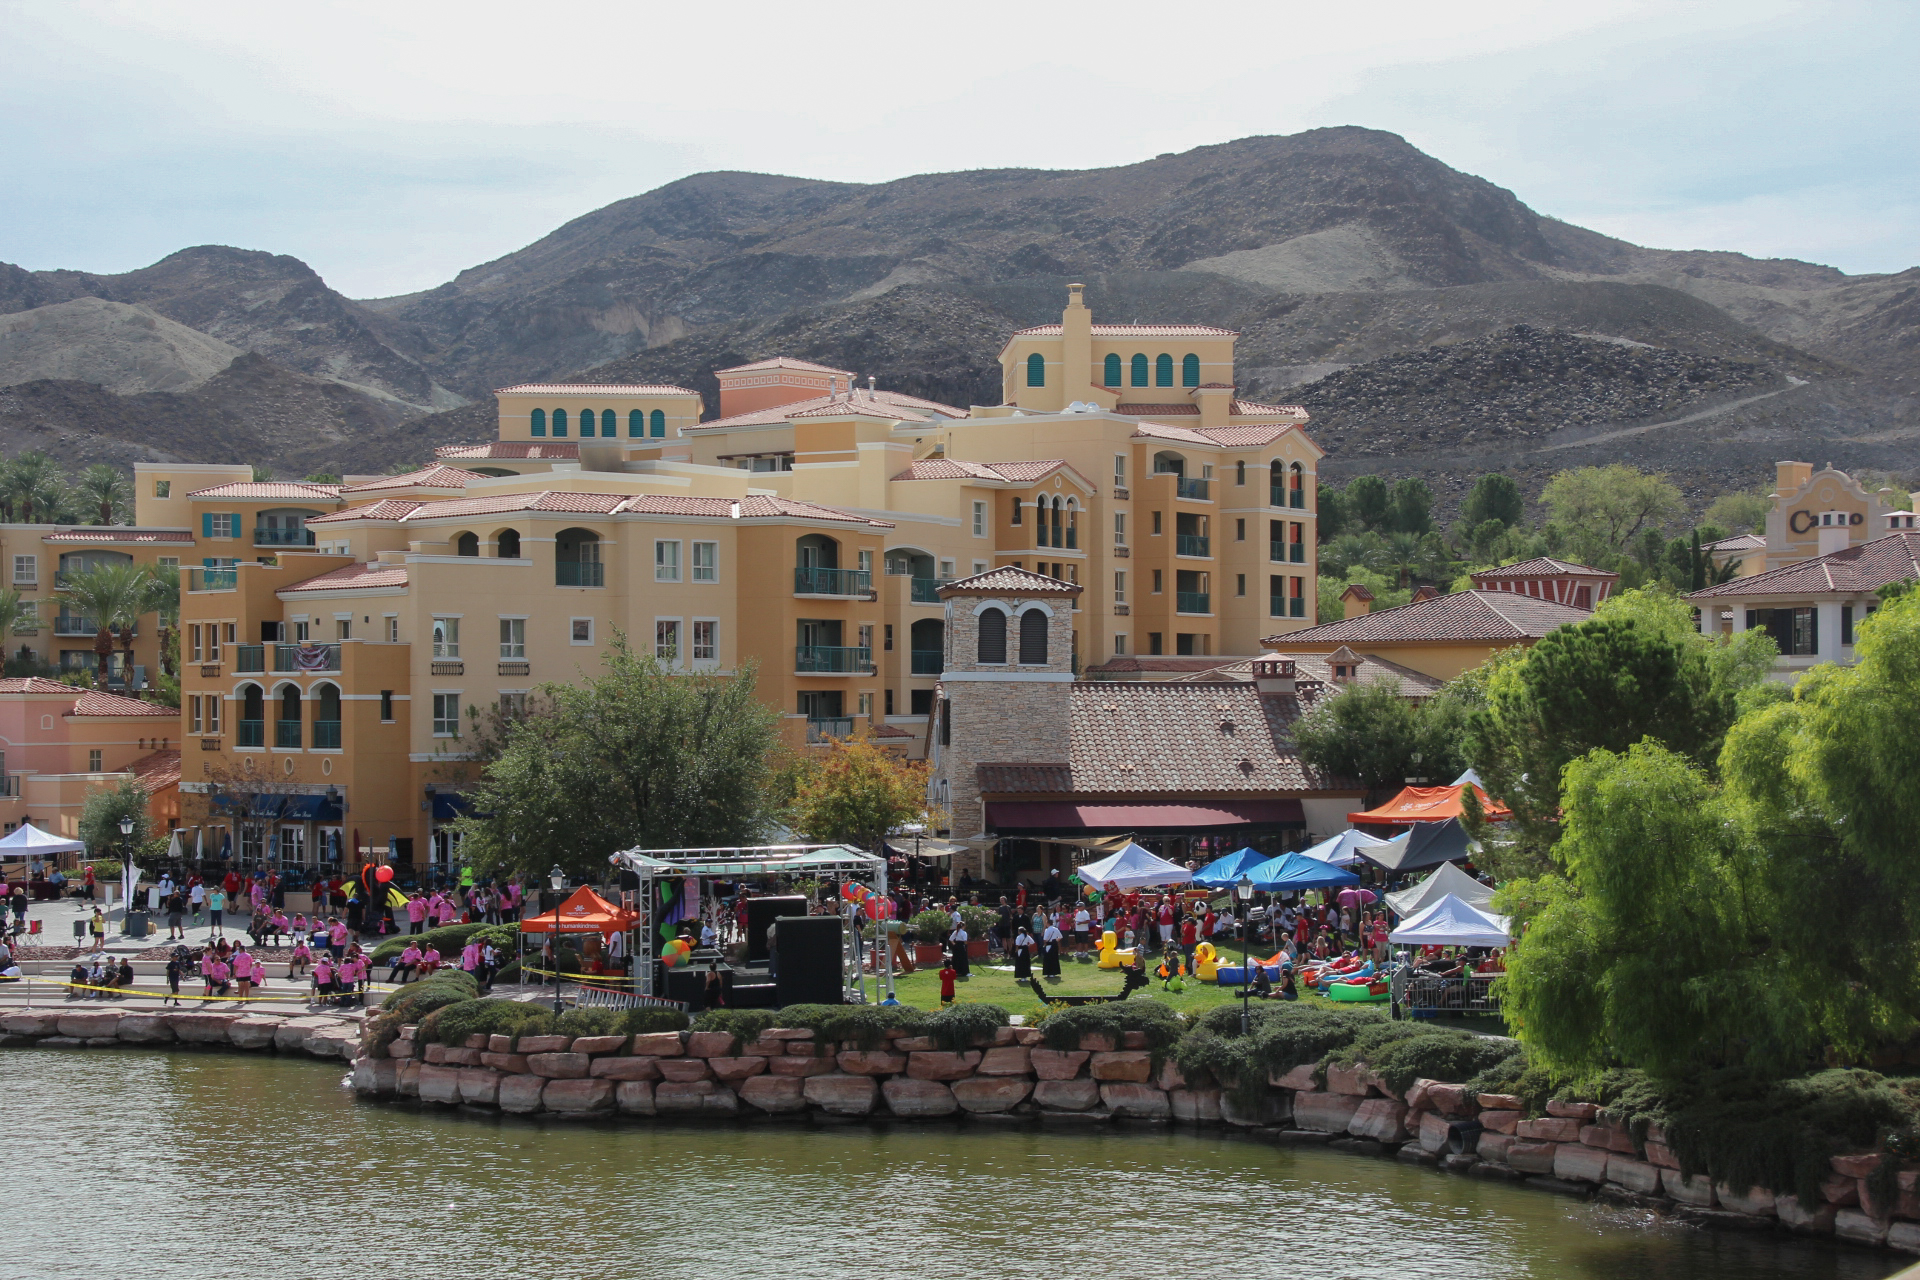 Festival tents and crowd at the waters edge at lake Las Vegas